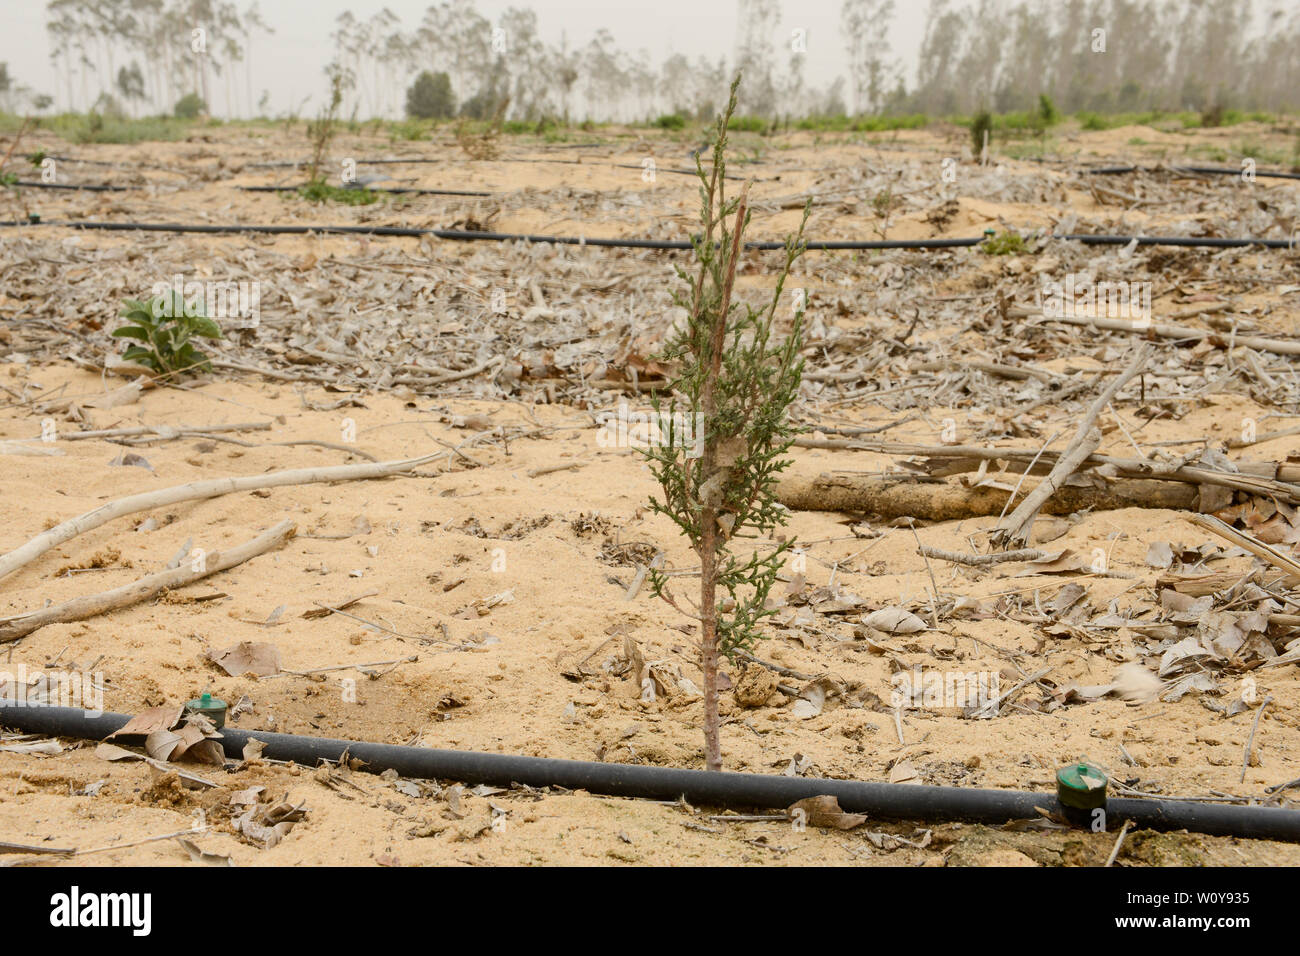 EGYPT, Ismallia , Sarapium forest in the desert, the trees are irrigated by treated sewage water from Ismalia, new cypress plantation with drip irrigation Stock Photo